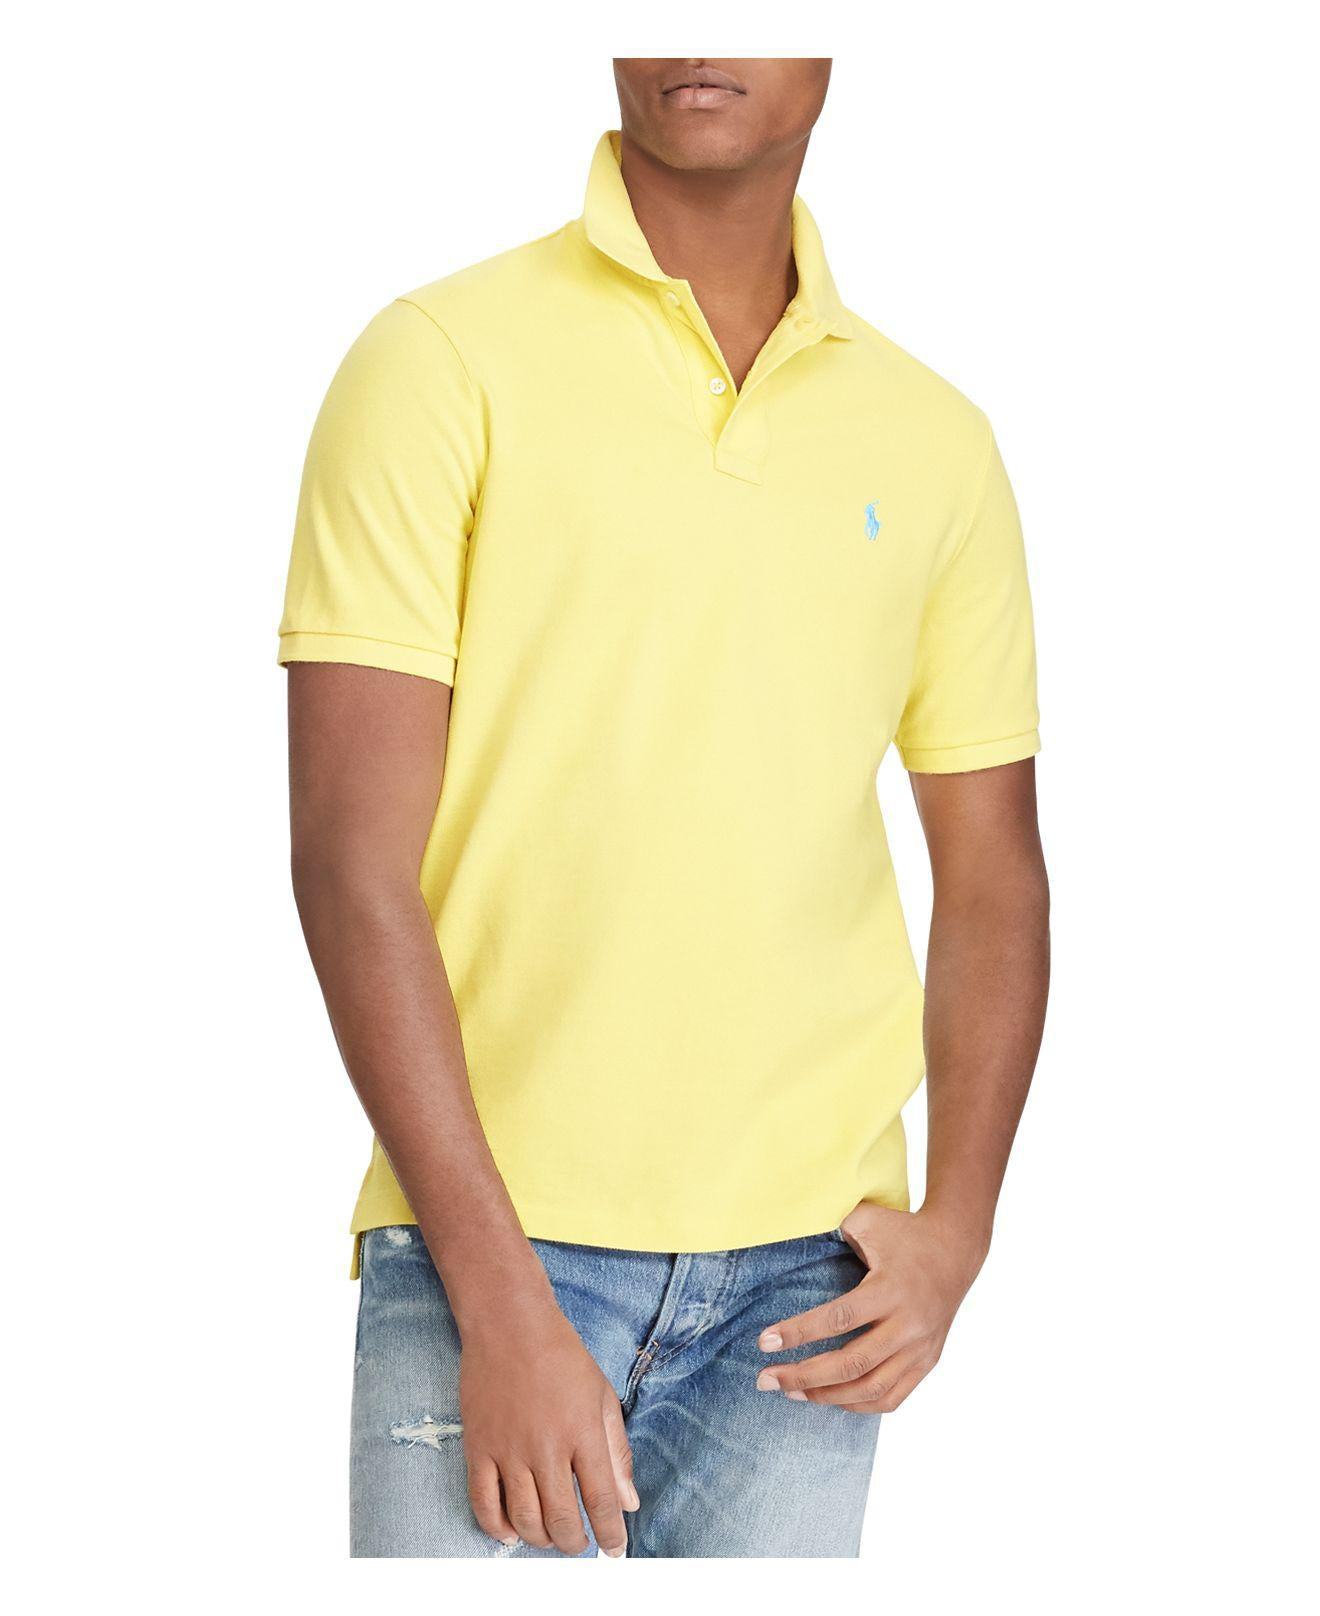 Lauren Slim Fit Polo Ralph Mesh Custom uTlJcF5K13